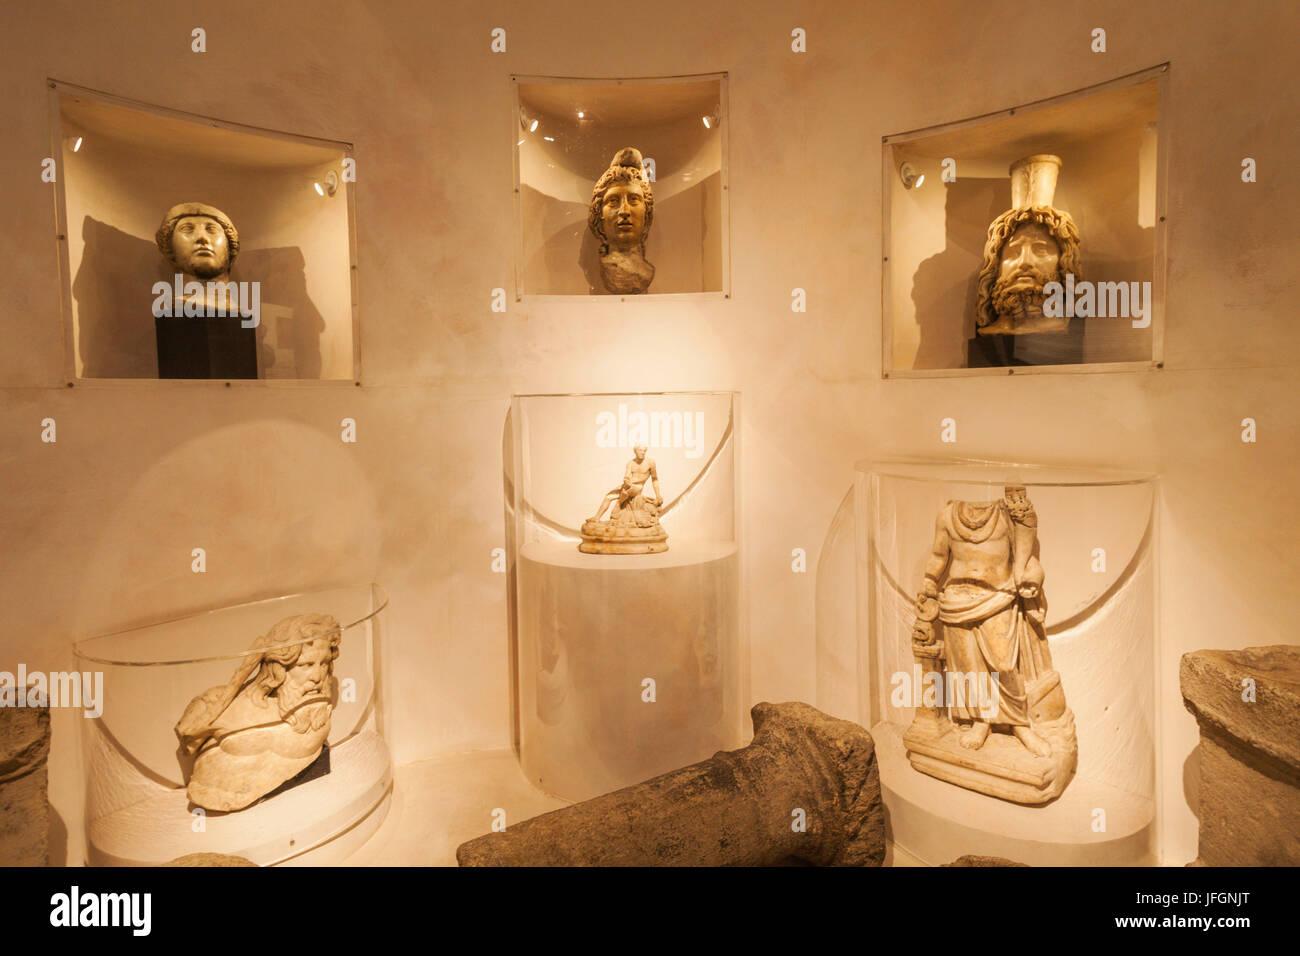 England, London, The City, Museum of London, Exhibit of Statues from The Temple of Mithras - Stock Image